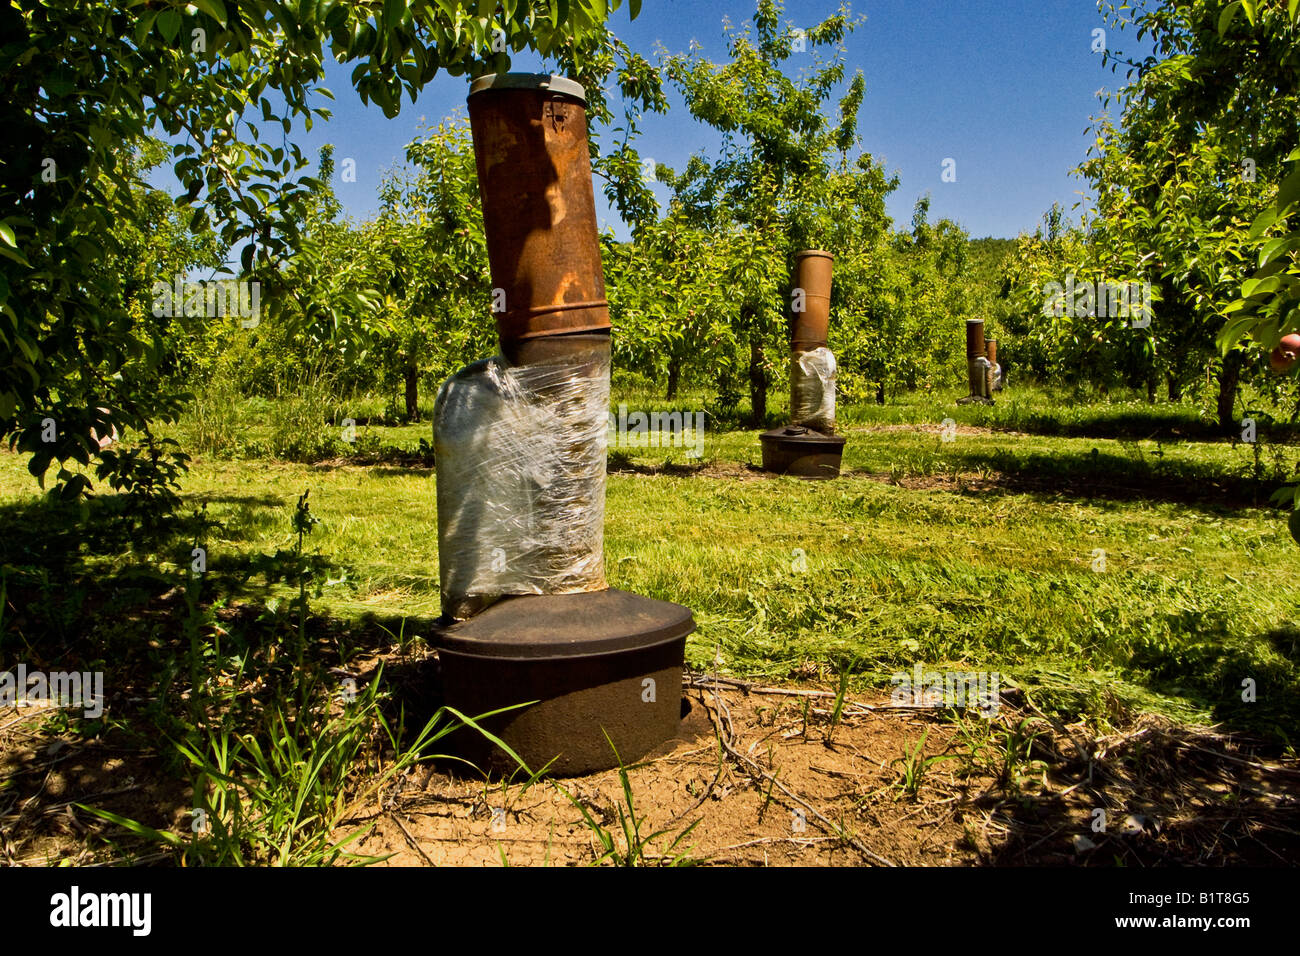 oil fired smudge pots are distributed throughout a fruit orchard in Ashland Oregon Note the side mounted rebreather - Stock Image